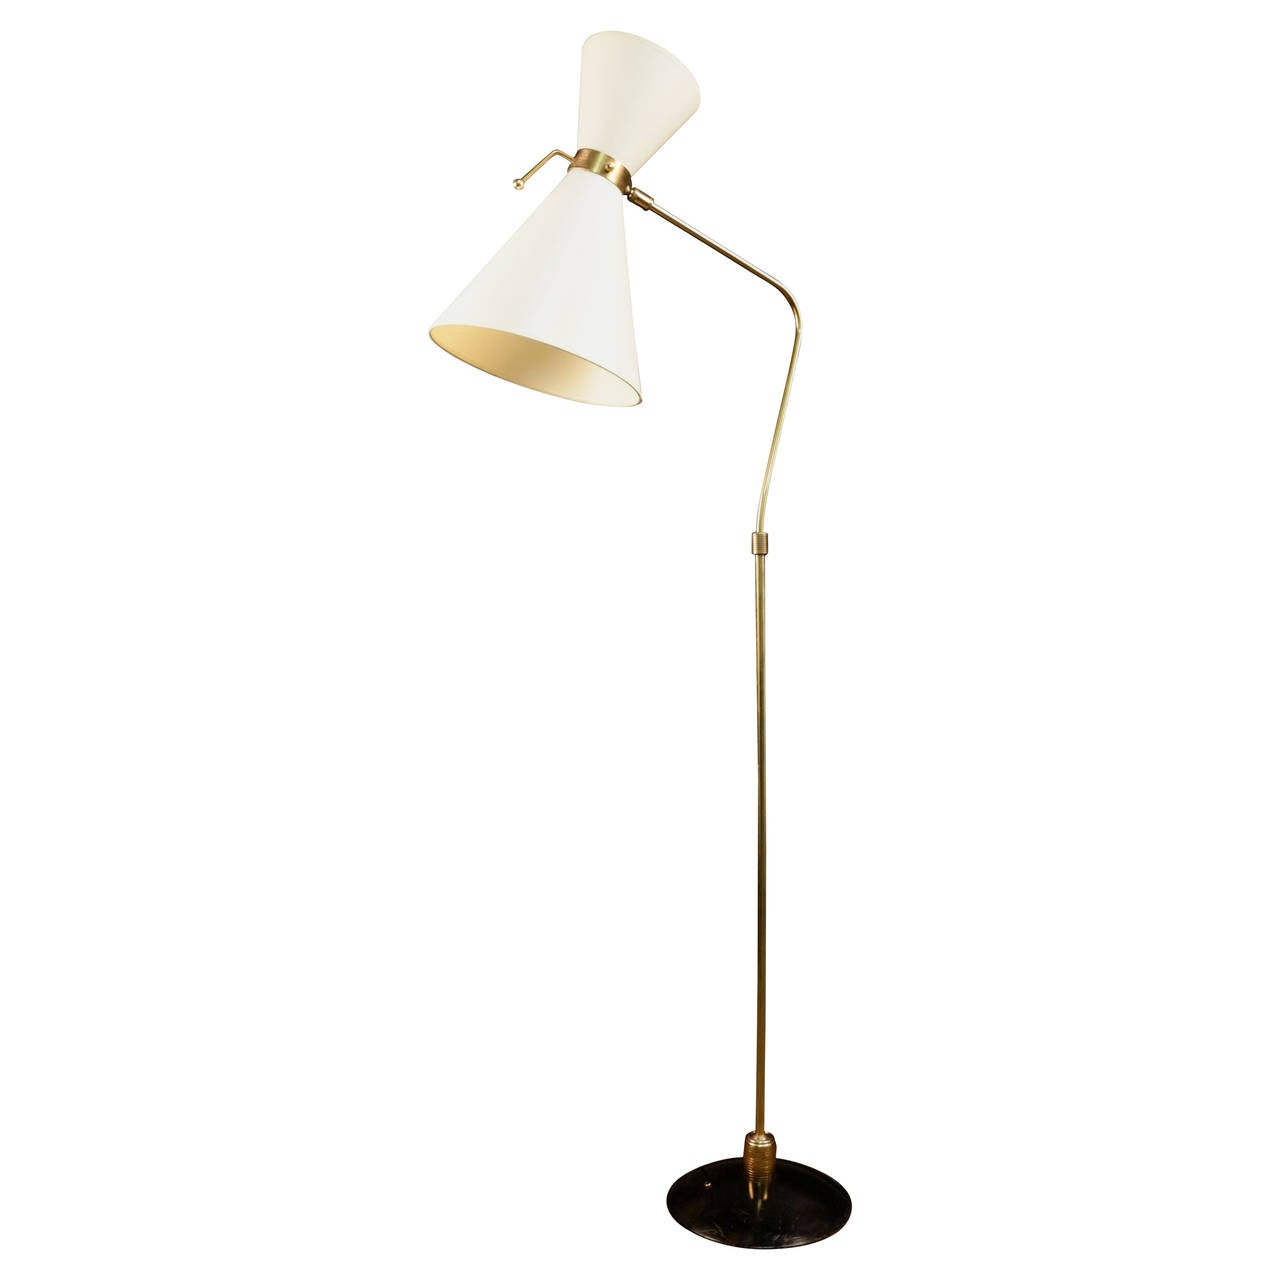 1950s floor lamp by maison lunel at 1stdibs for 1950s floor lamps